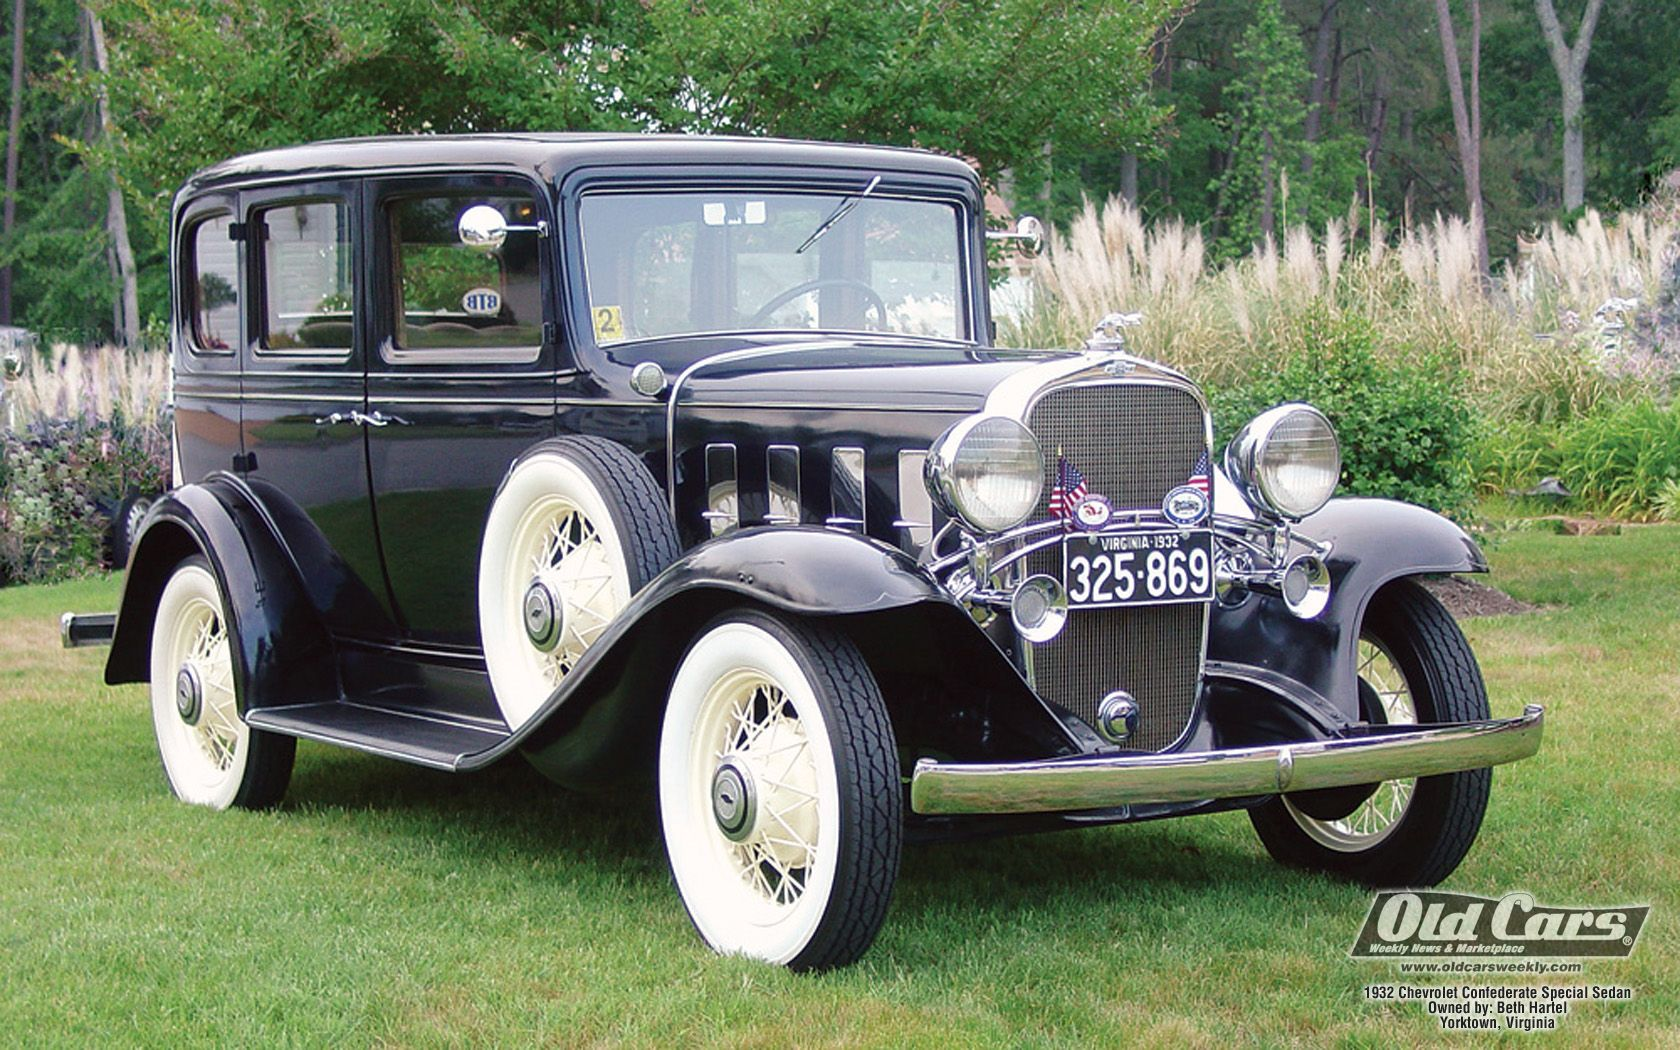 1932 Chevrolet | 30\'s Chevys | Pinterest | Chevrolet, Cars and ...